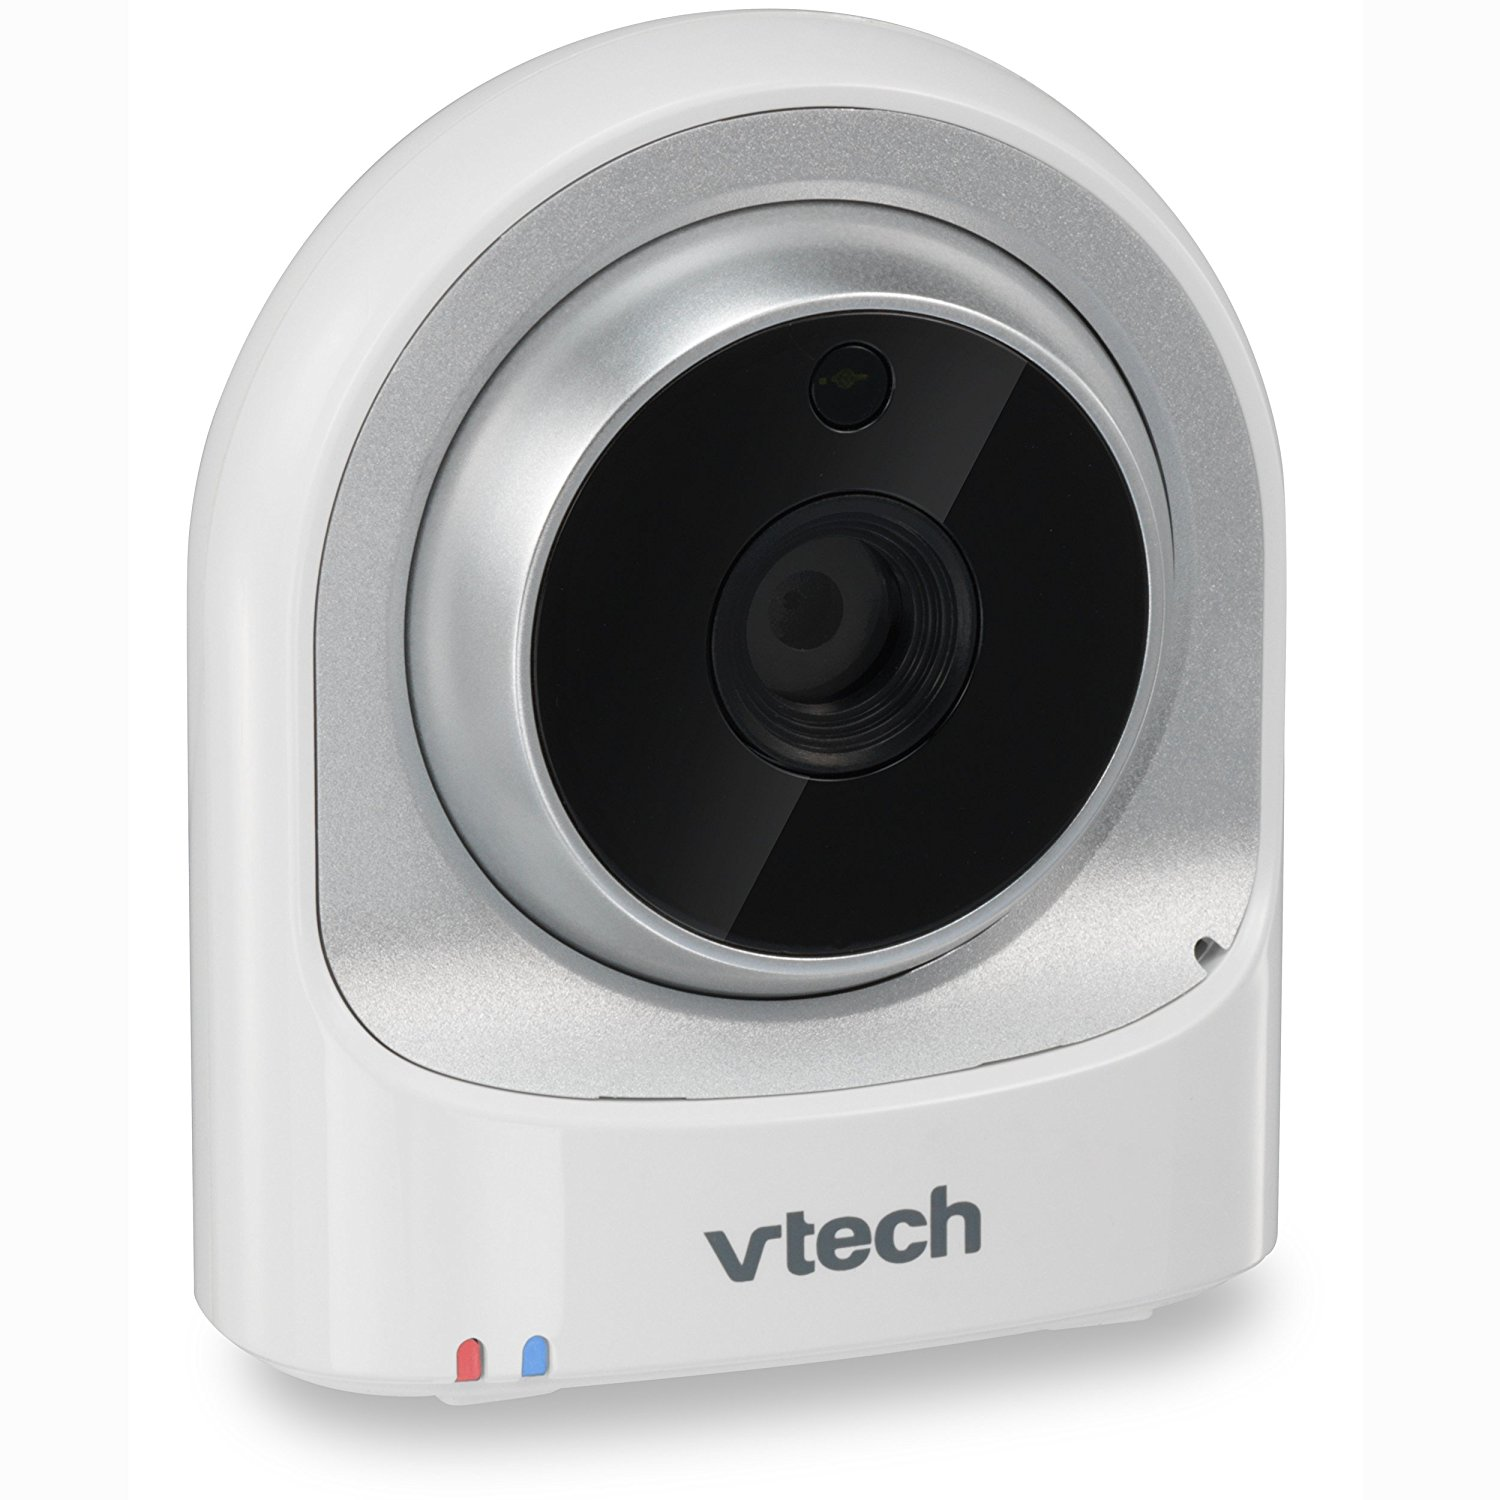 VTech VC921 Wireless Wi-Fi Ip Camera with with Remote Access App, 720p HD, Remote 10x Zoom, Free Live Streaming & Automatic Infrared Night Vision